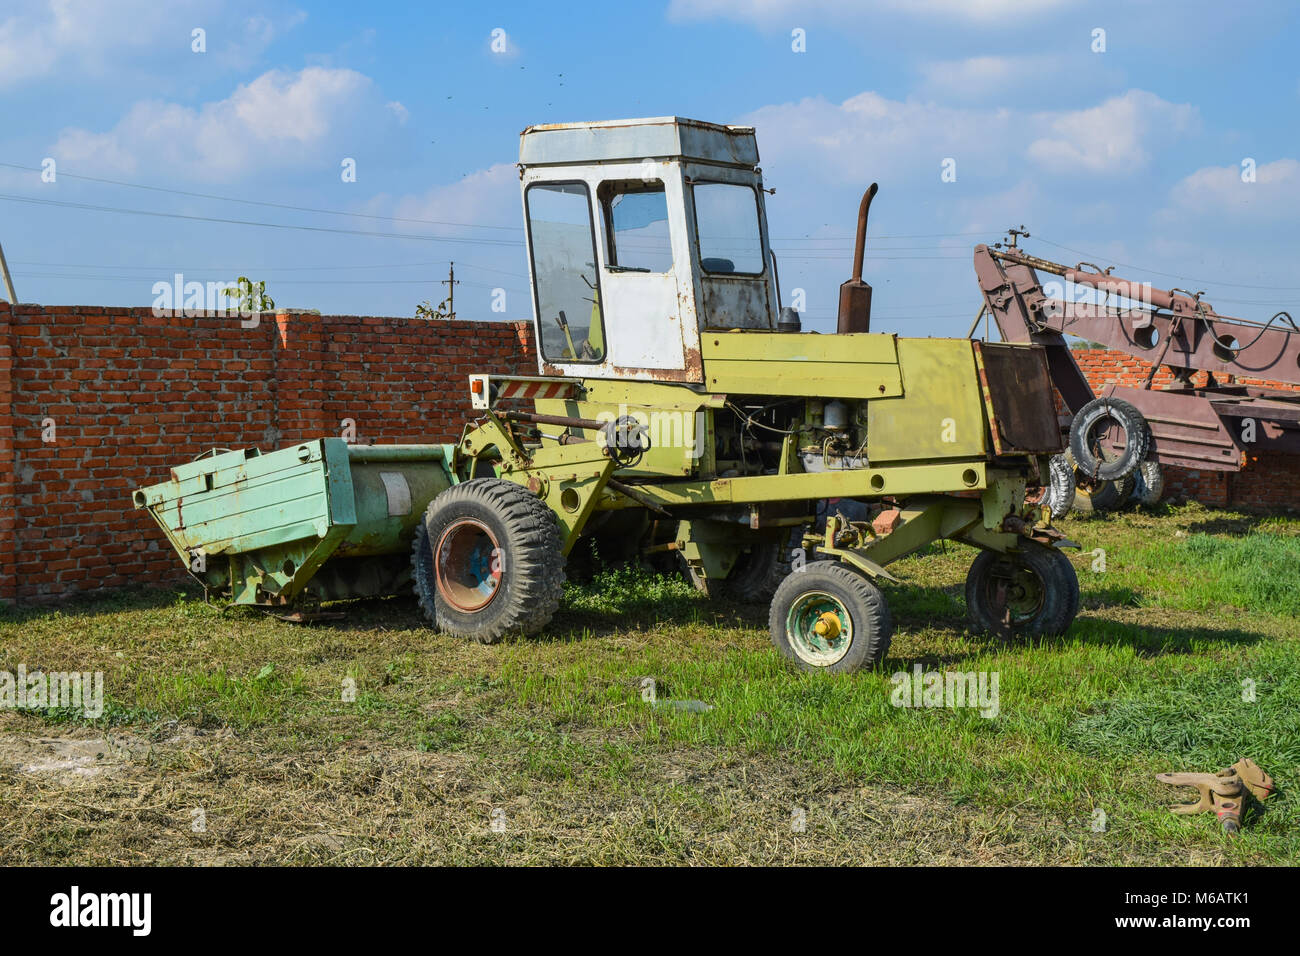 Hay Lift For Truck : Hay truck stock photos images alamy